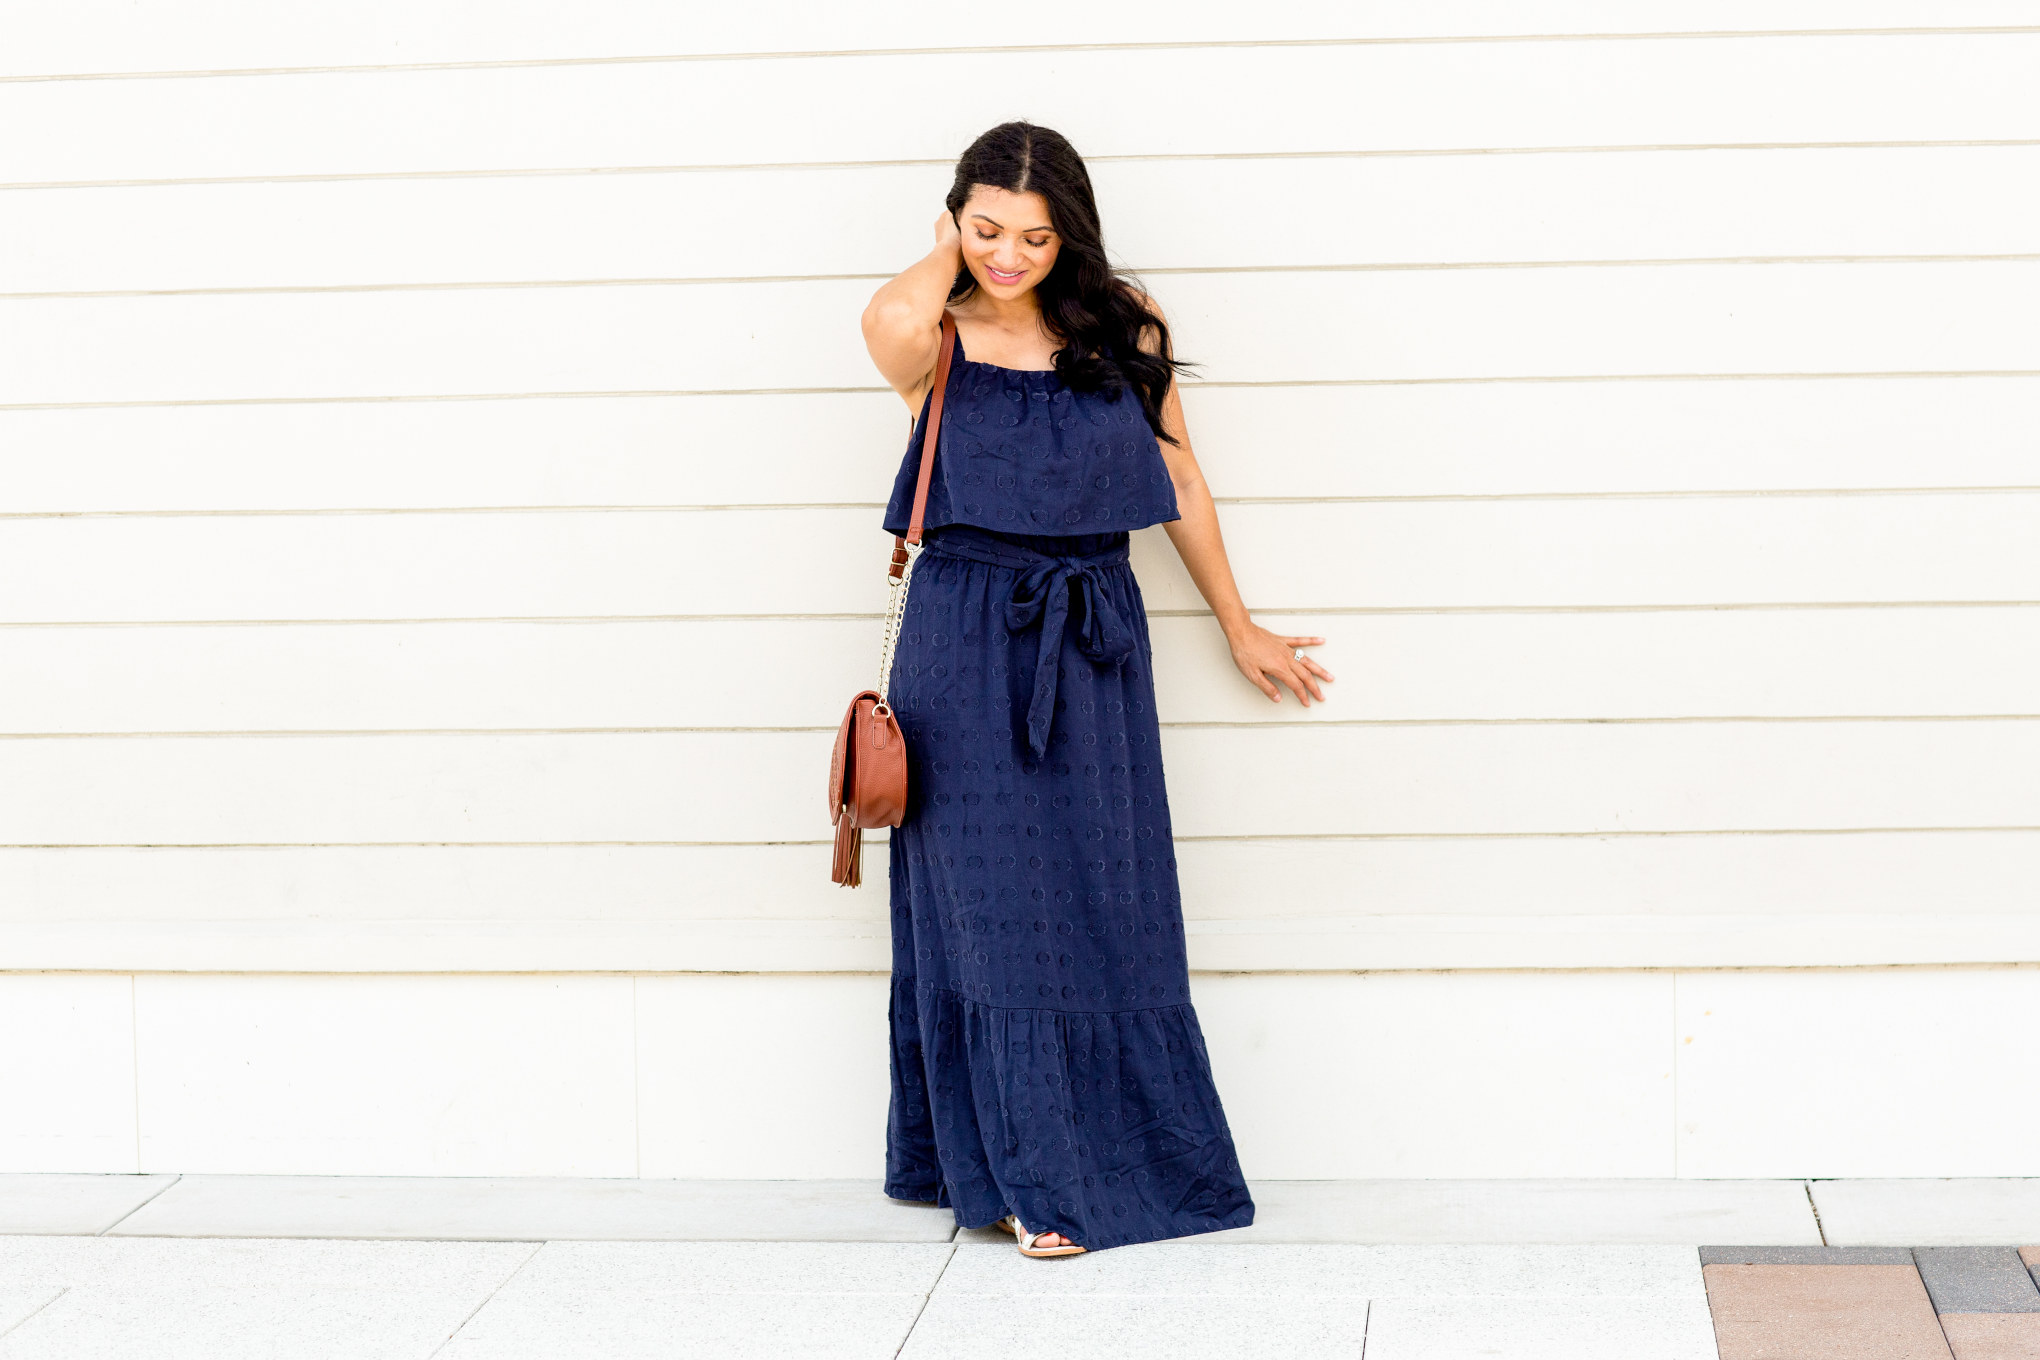 Looking for the perfect summer dress? Orange County Blogger Debbie Savage is sharing the perfect summer dress from 1901 by Nordstrom. Click to see it here!